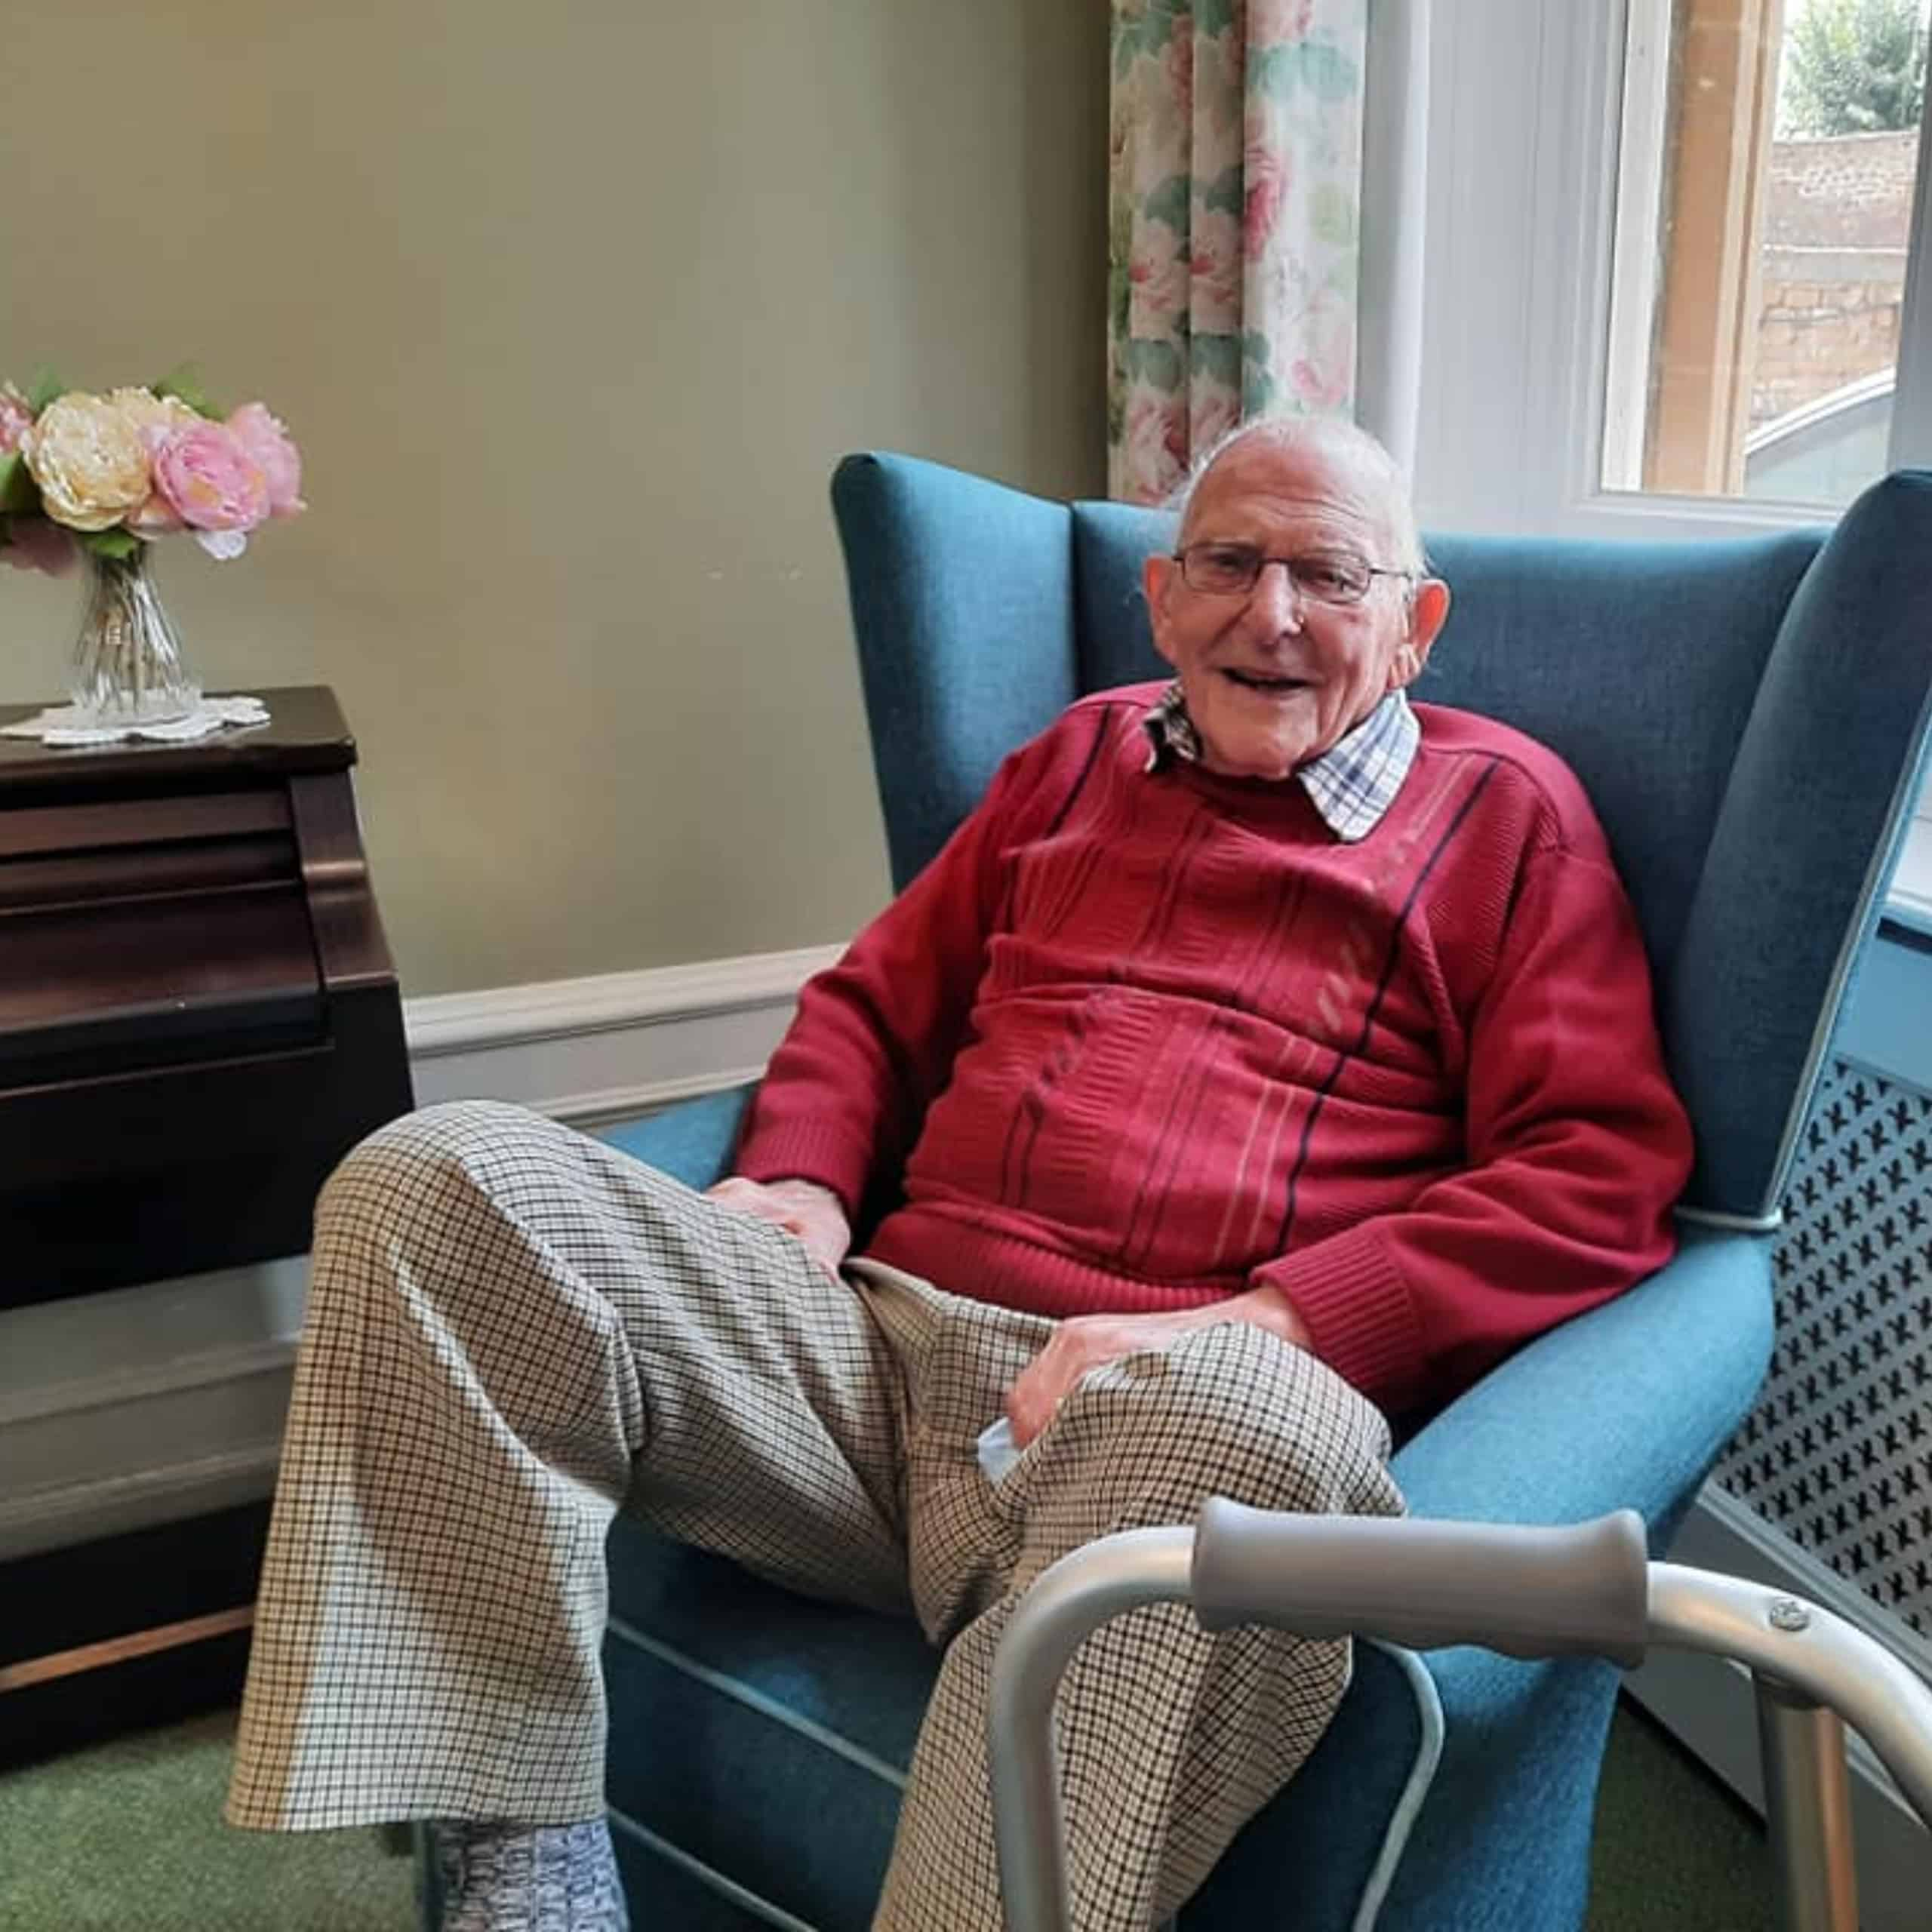 Geoffrey Hillman, resident of Featherton House Care Home in Deddington, has been sharing the story of his time in India.